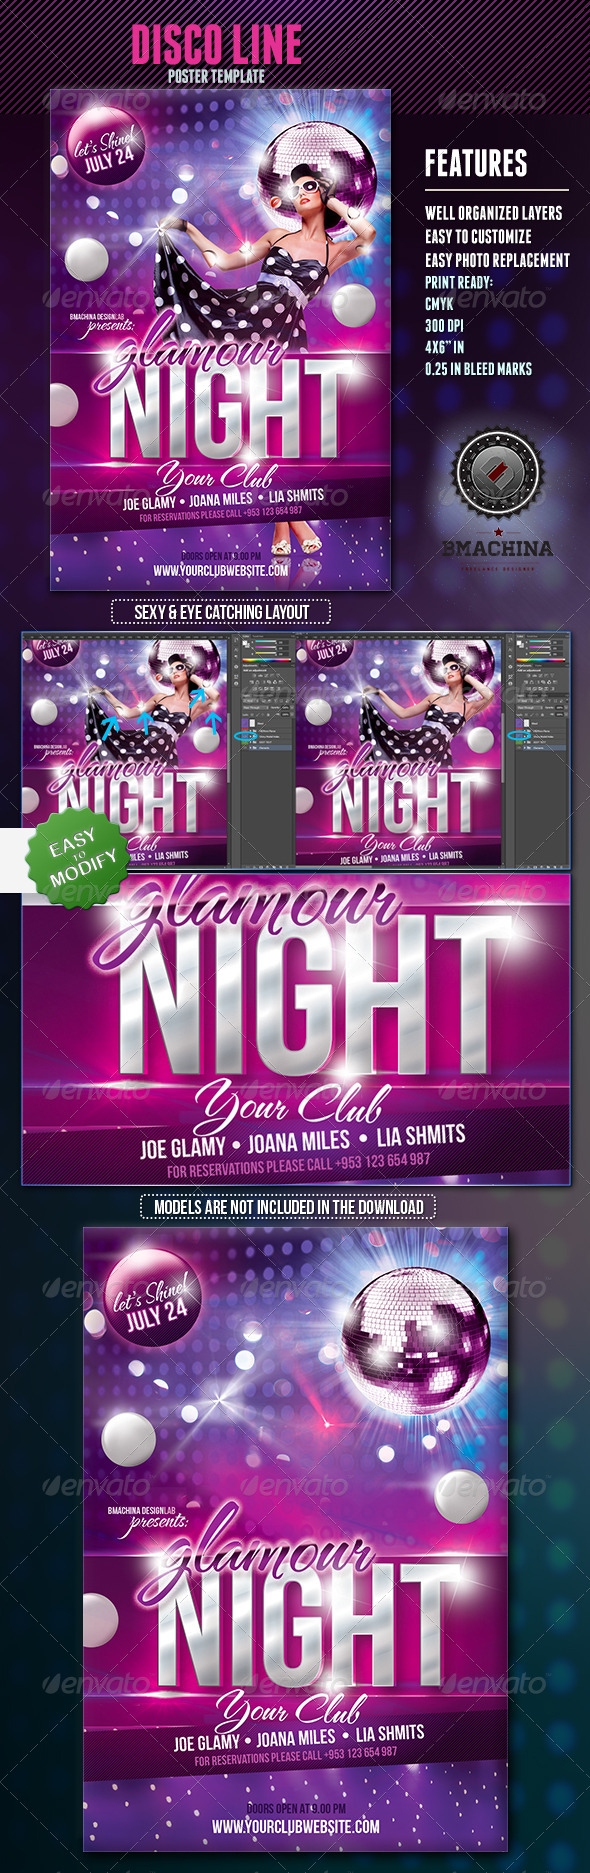 GlamourNight - Flyer Template - Clubs & Parties Events